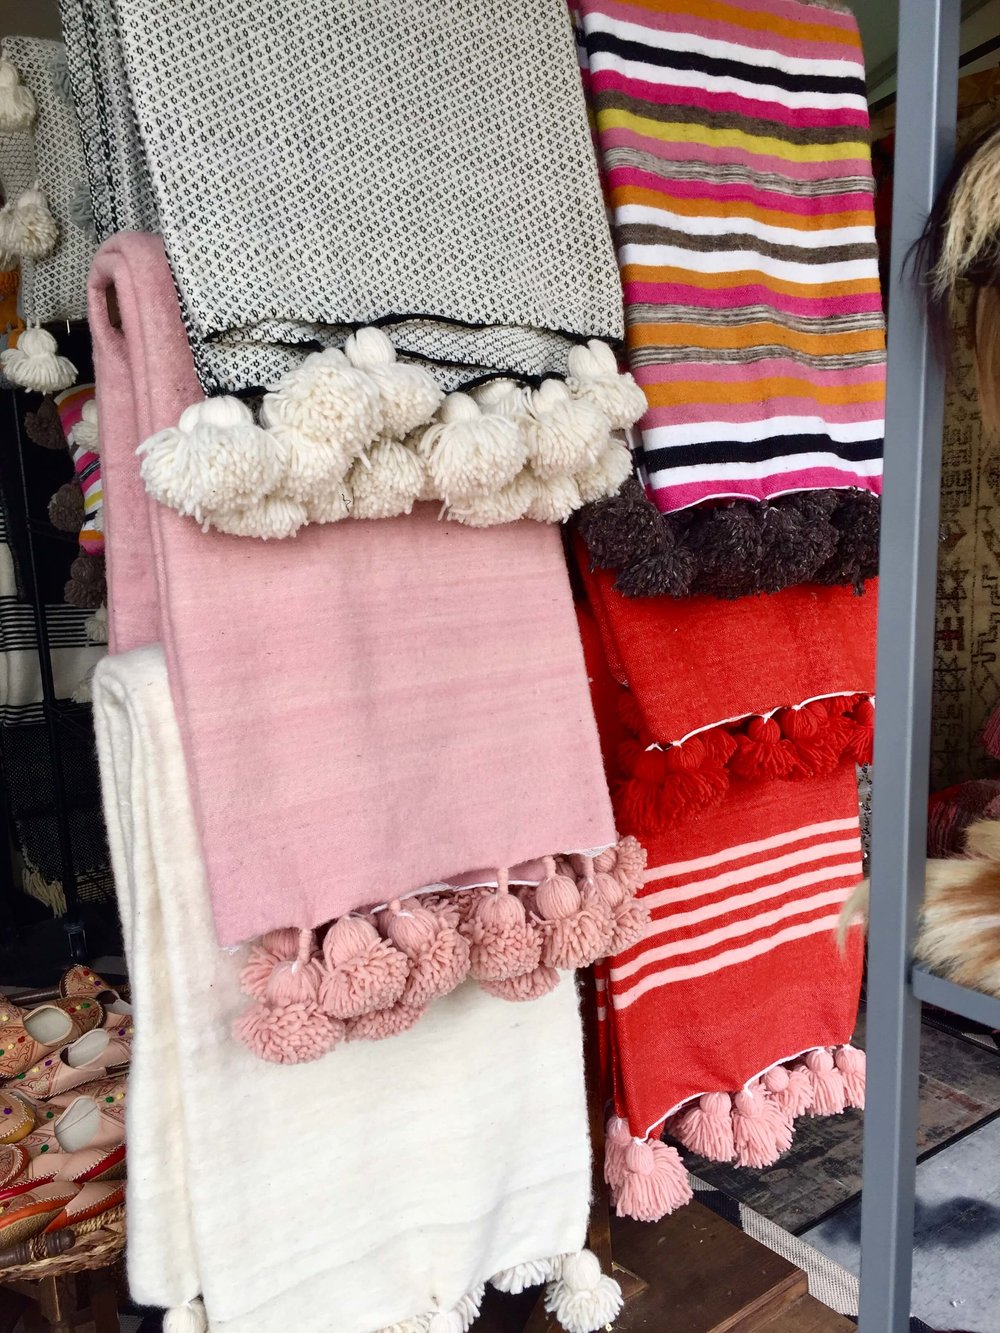 Moroccan blankets with pom poms in bright colors seen at Round Top, TX at Arbor Antiques #moroccan #pompom #blanket #roundtop